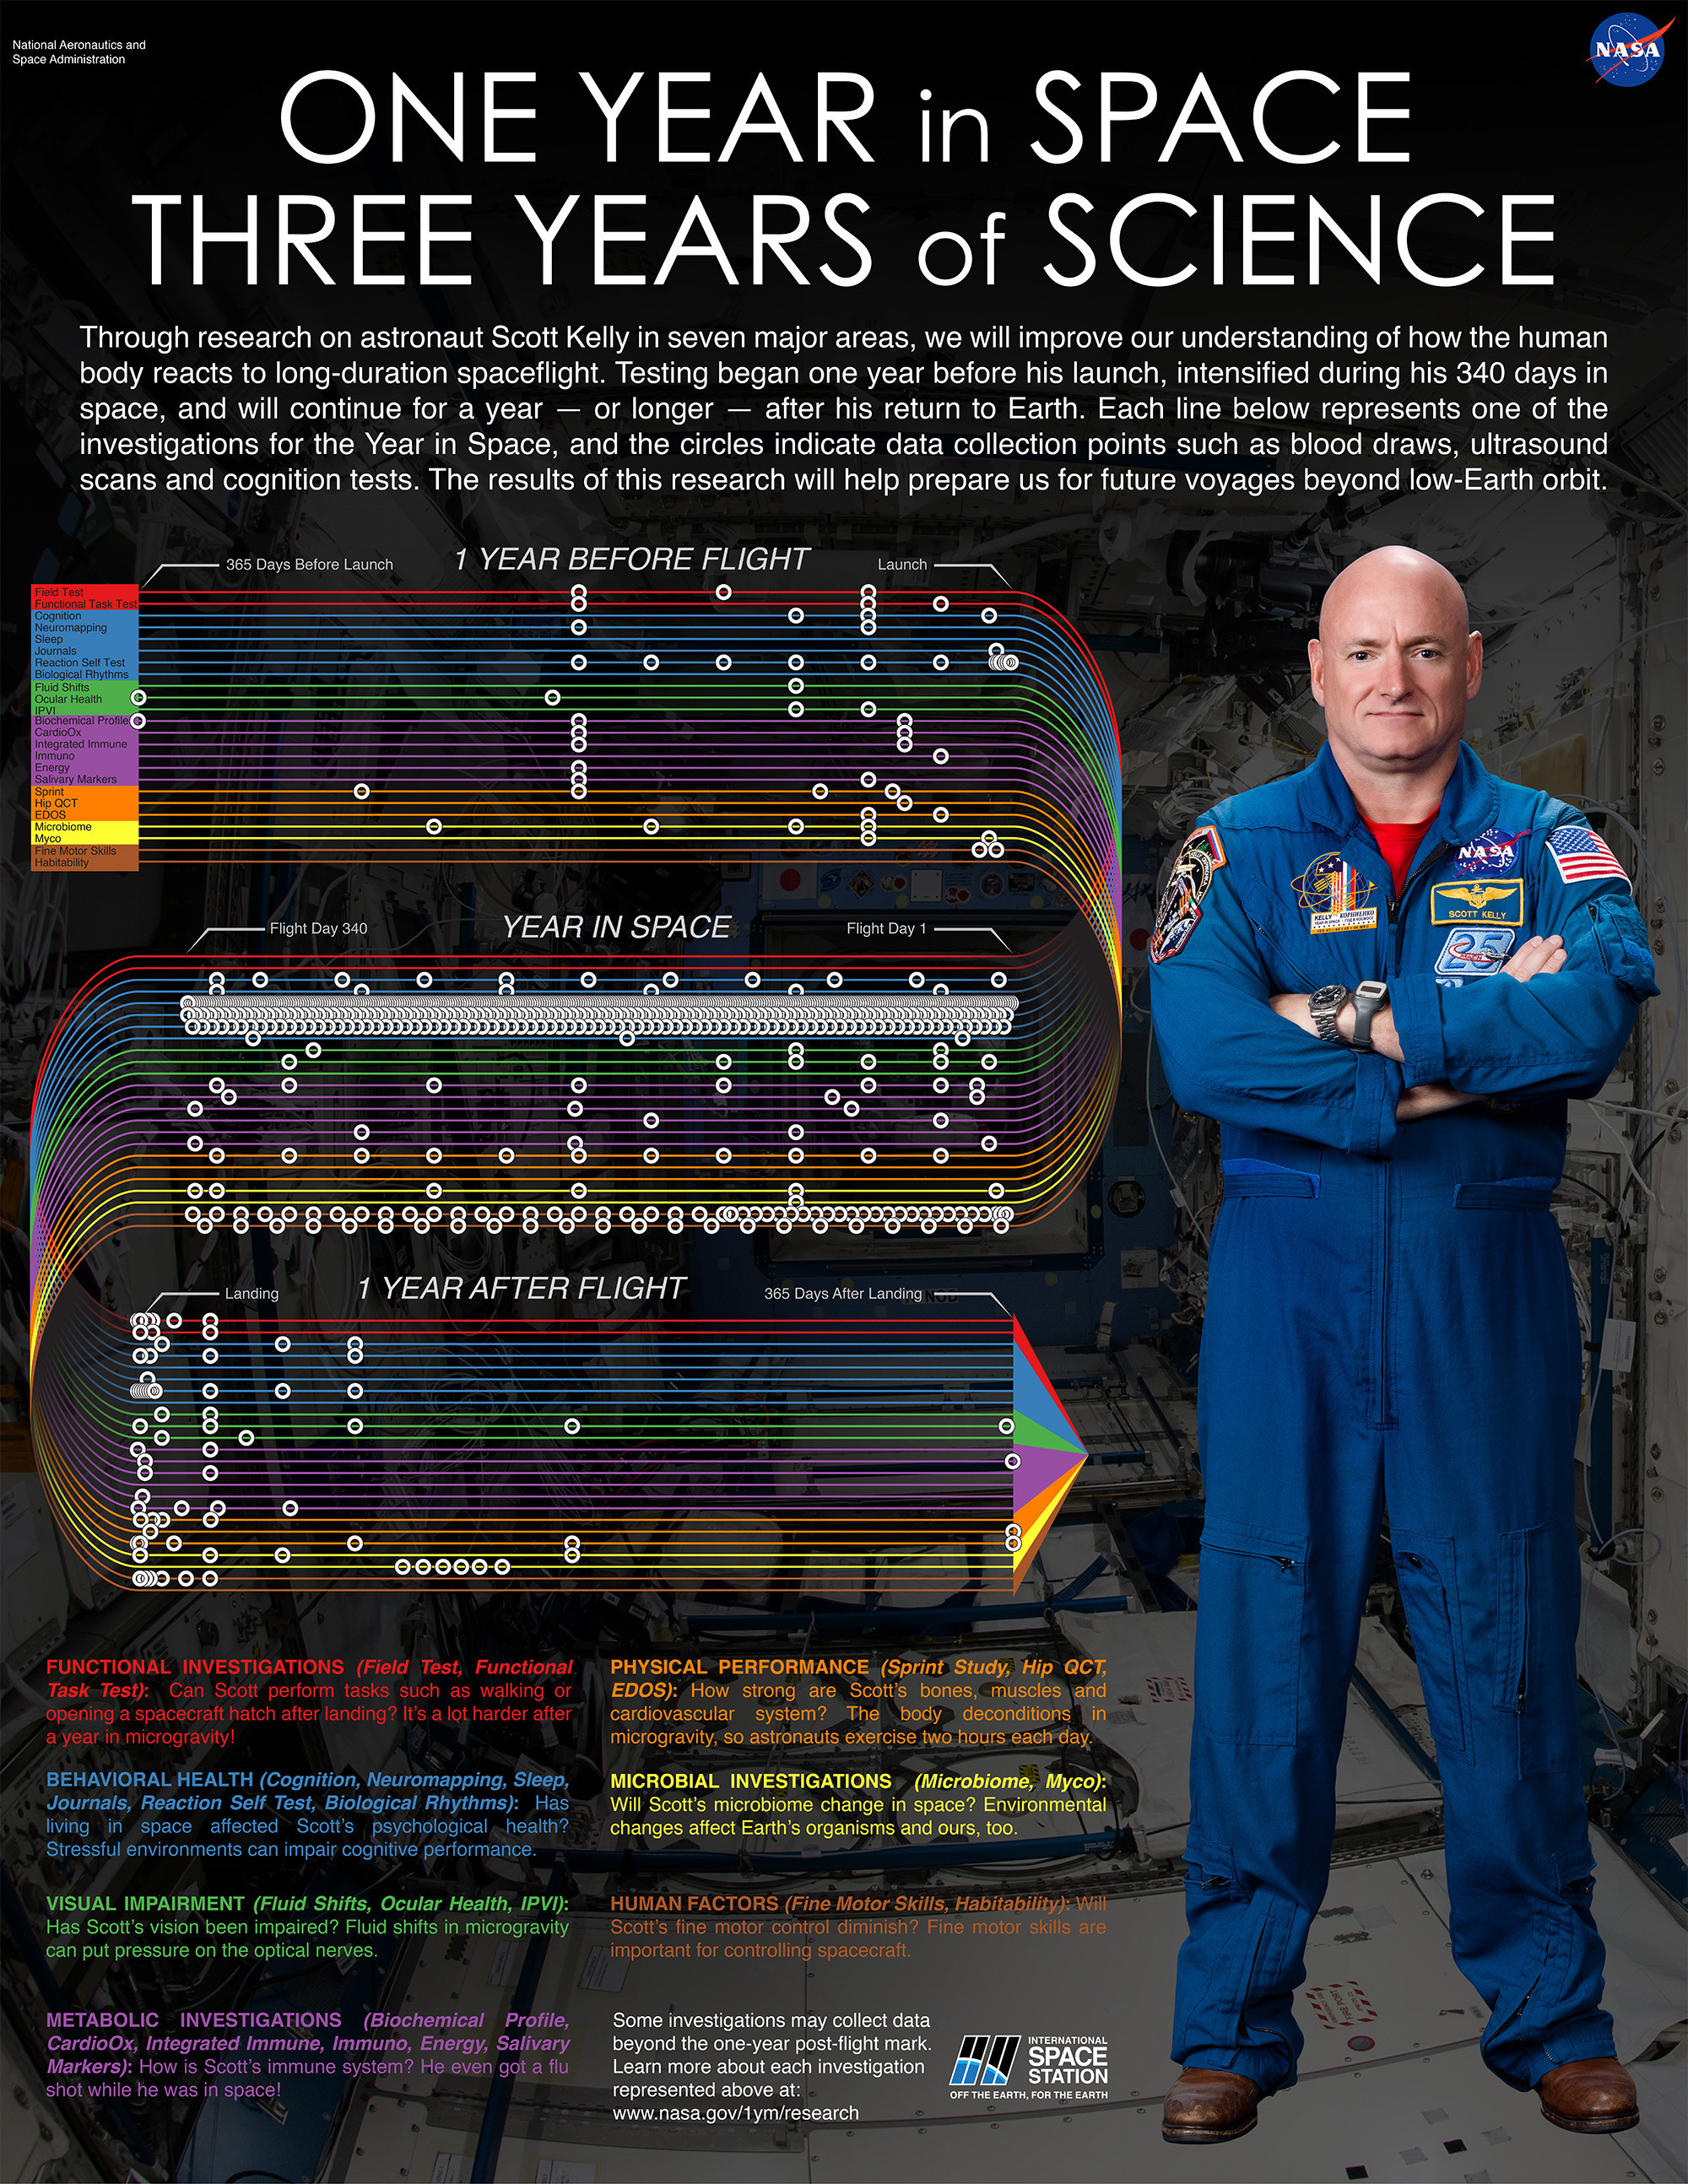 Physical effects of a year spent in space